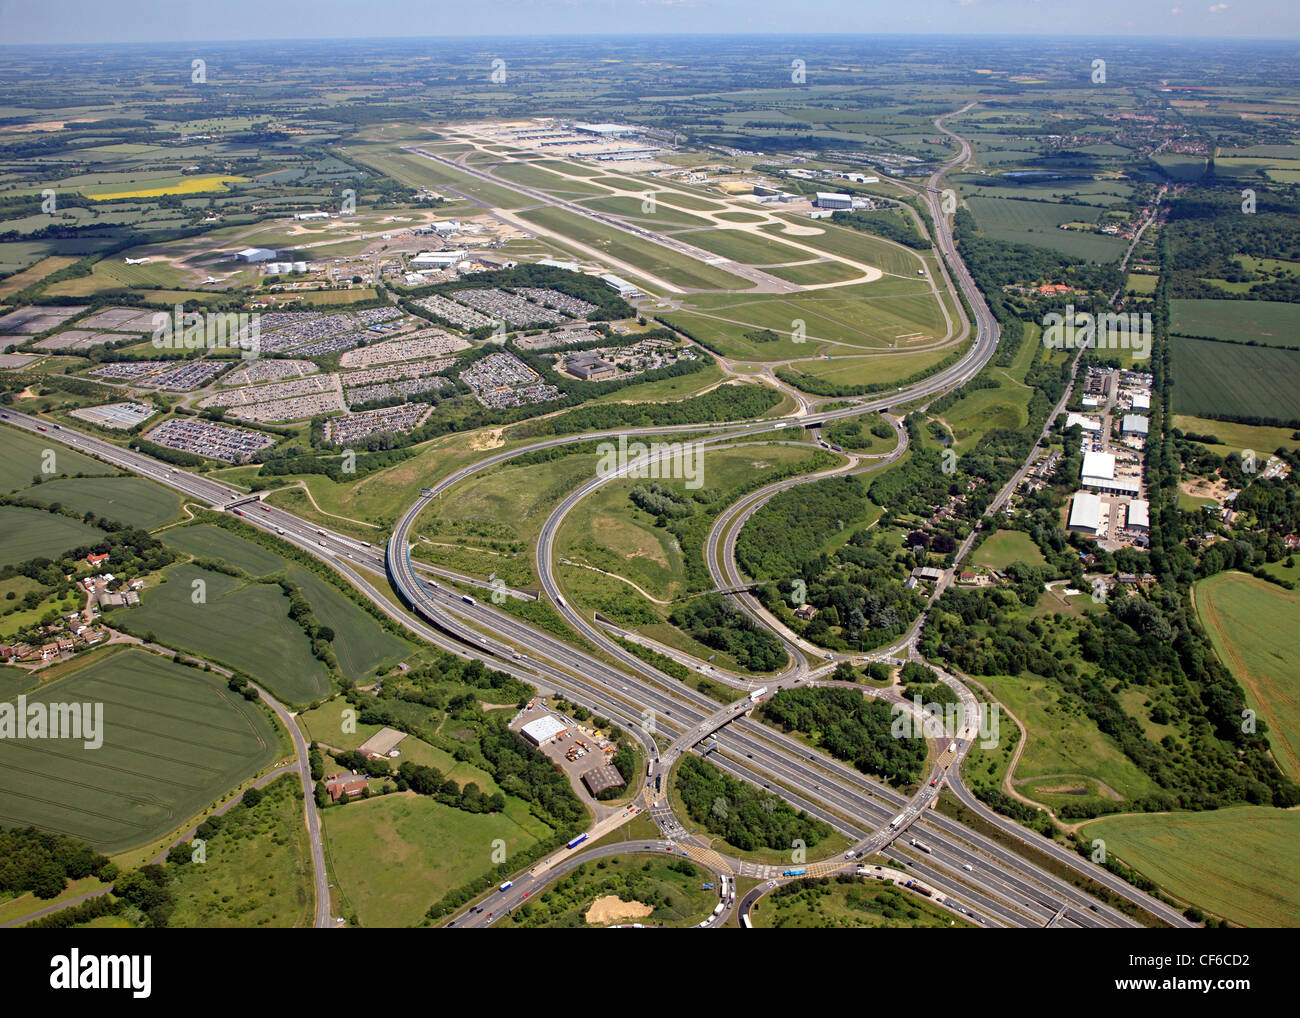 aerial view of Stansted airport in Essex with junction 8 of the M11 - Stock Image